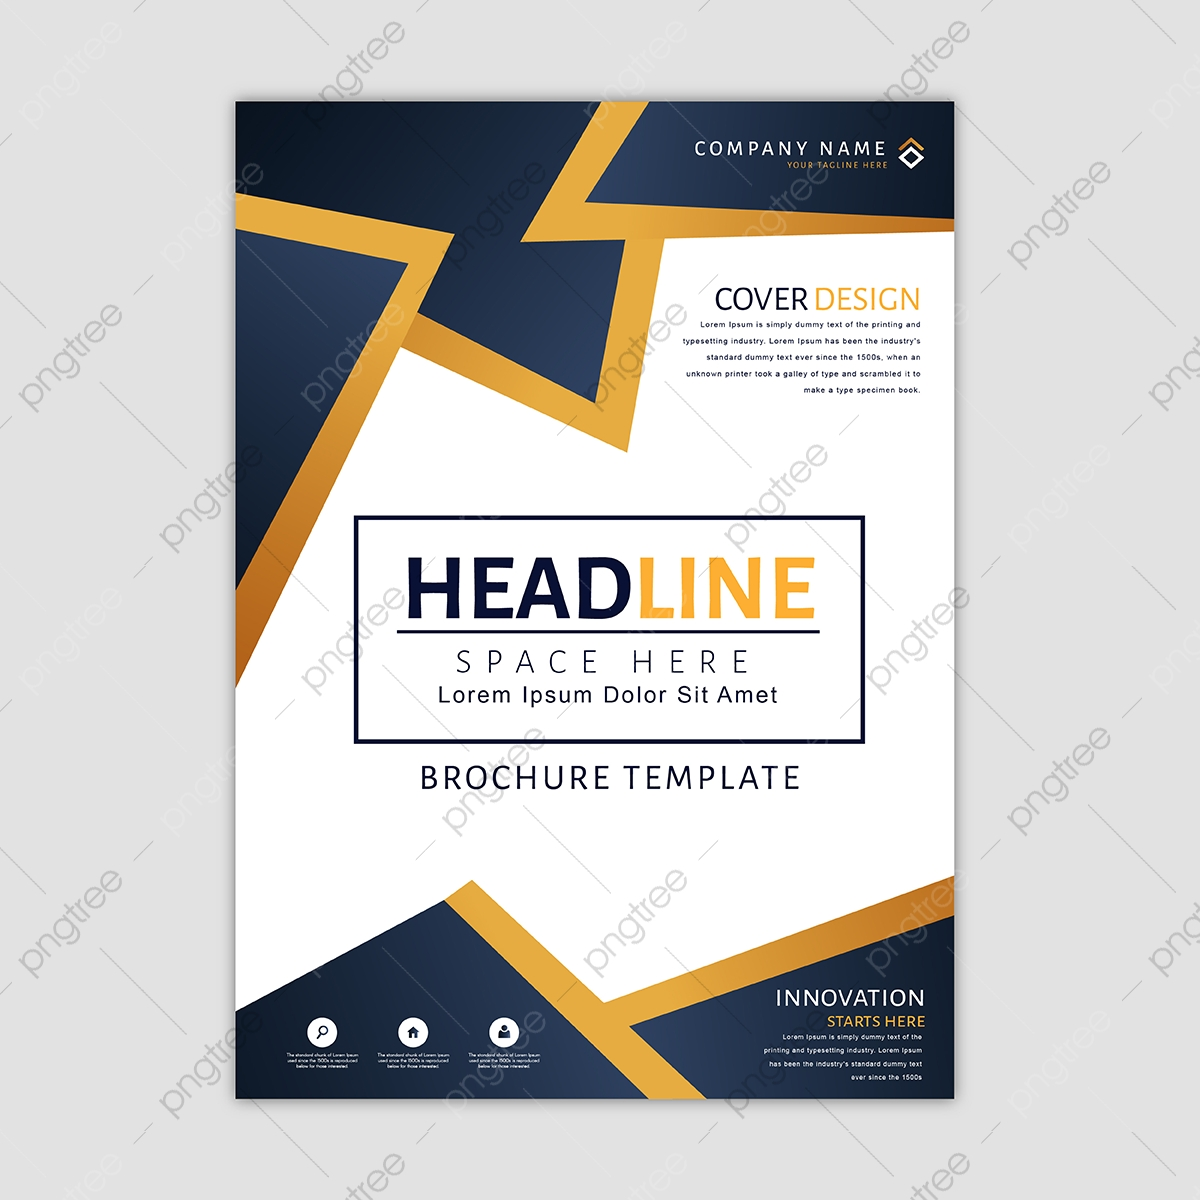 Business Brochure Template, Background, Wallpaper, Backdrop PNG and.